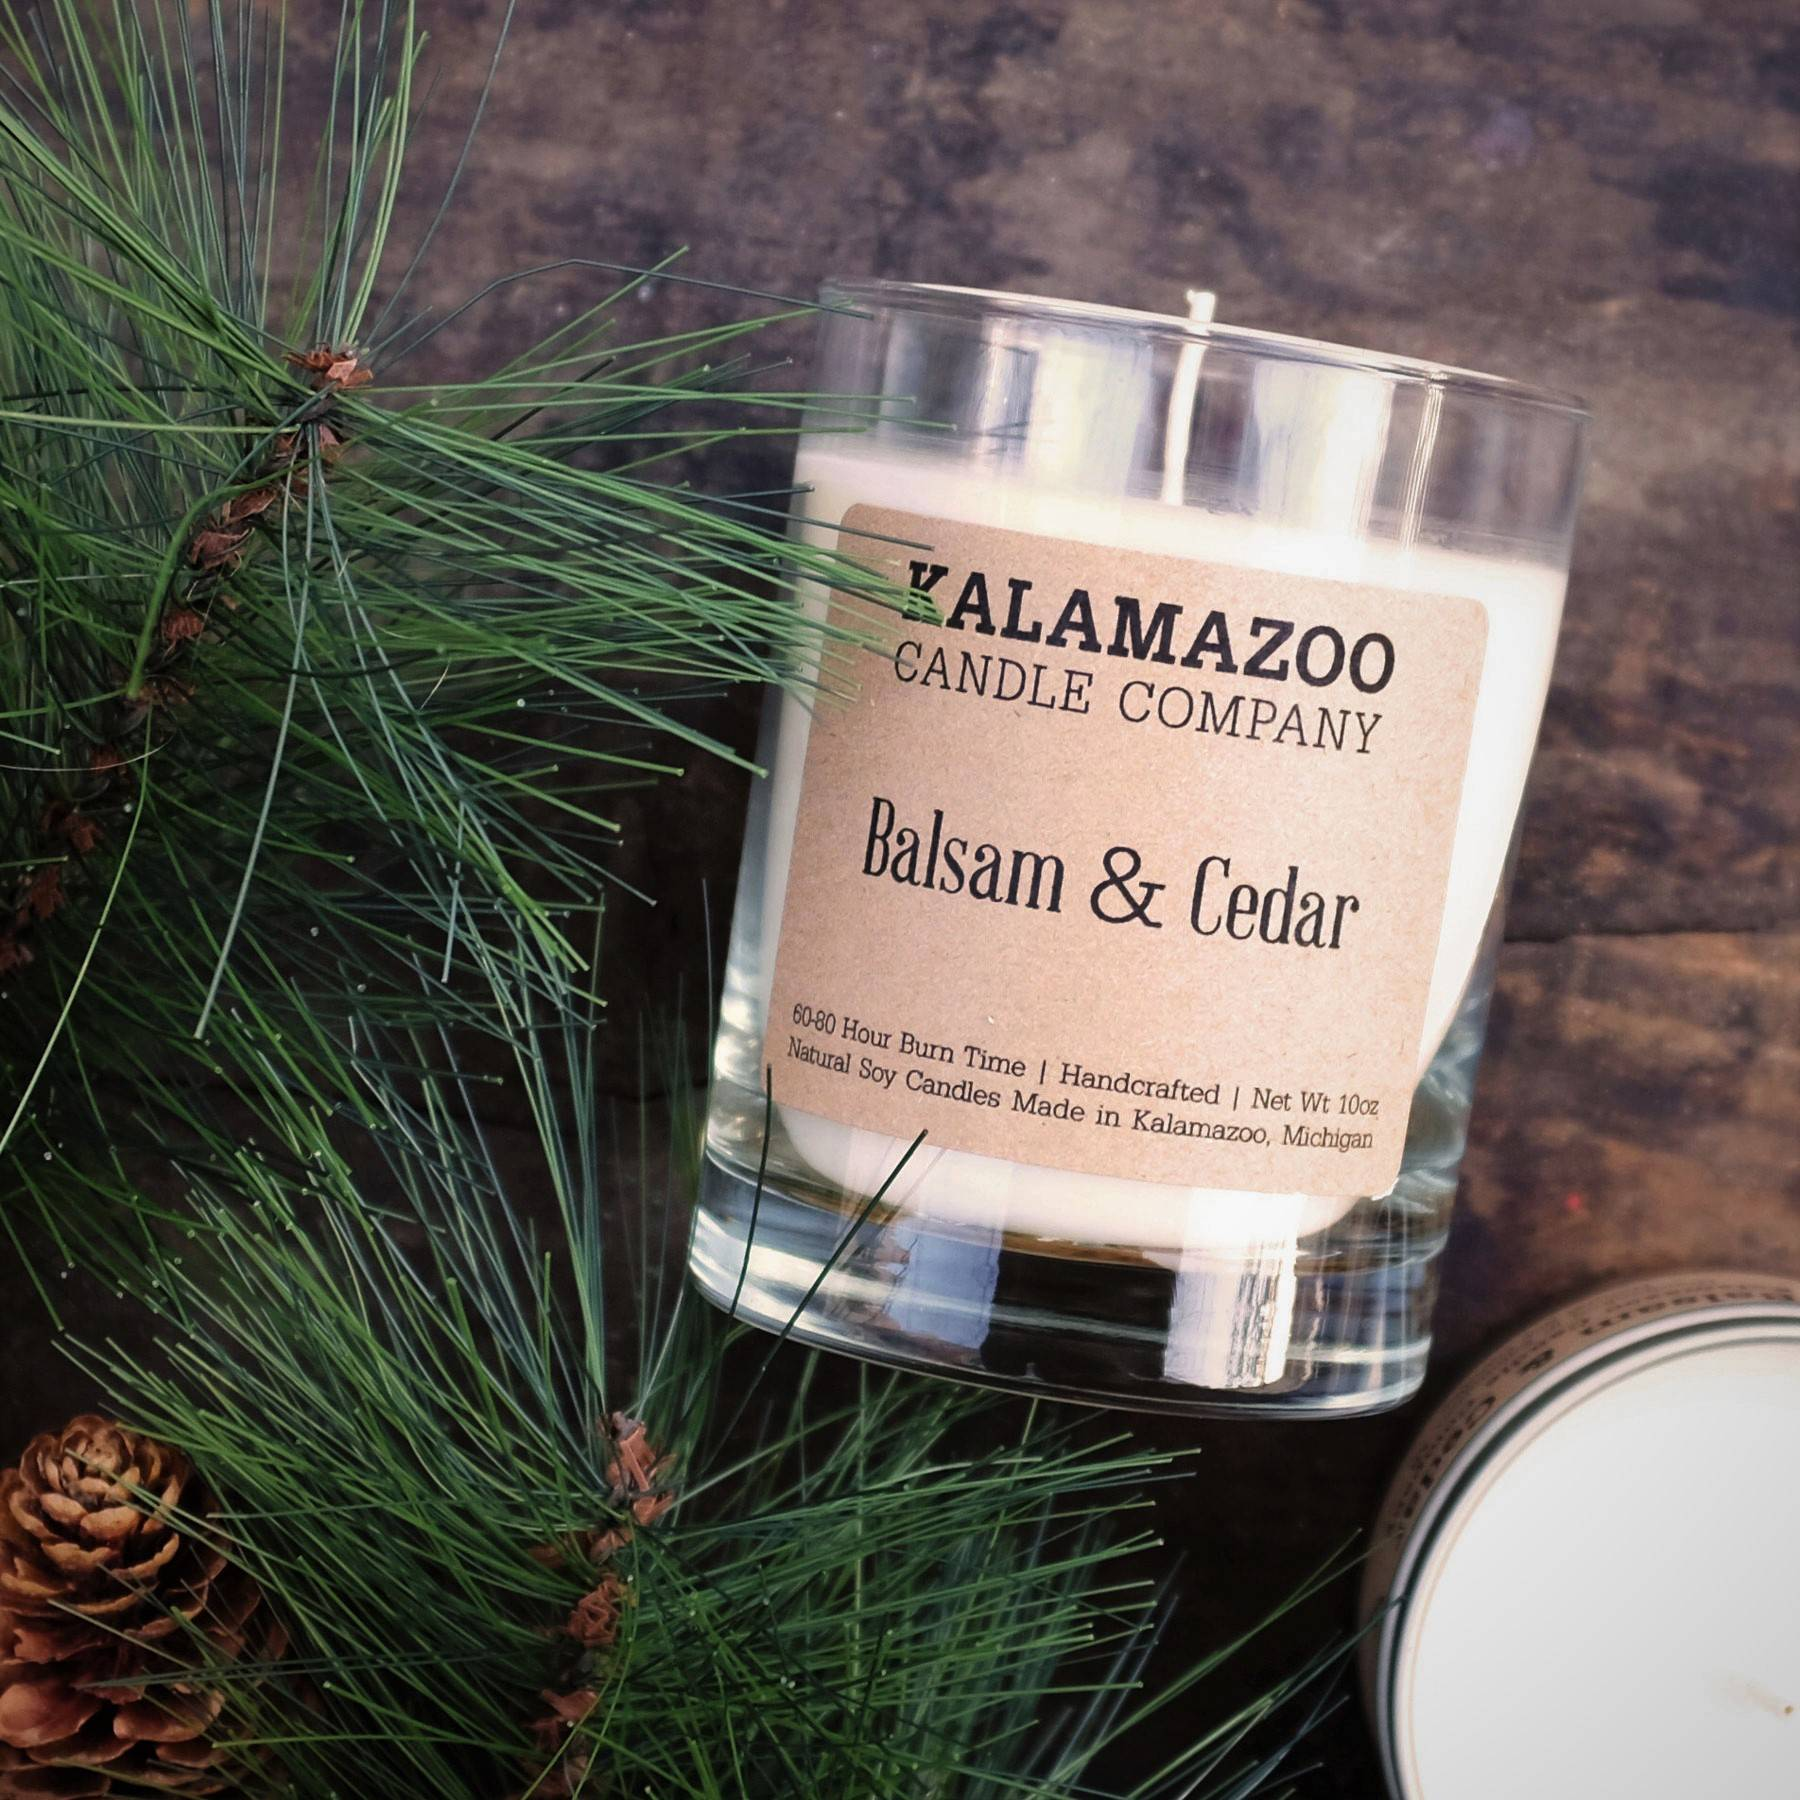 Balsam and Cedar natural soy wax scented candle